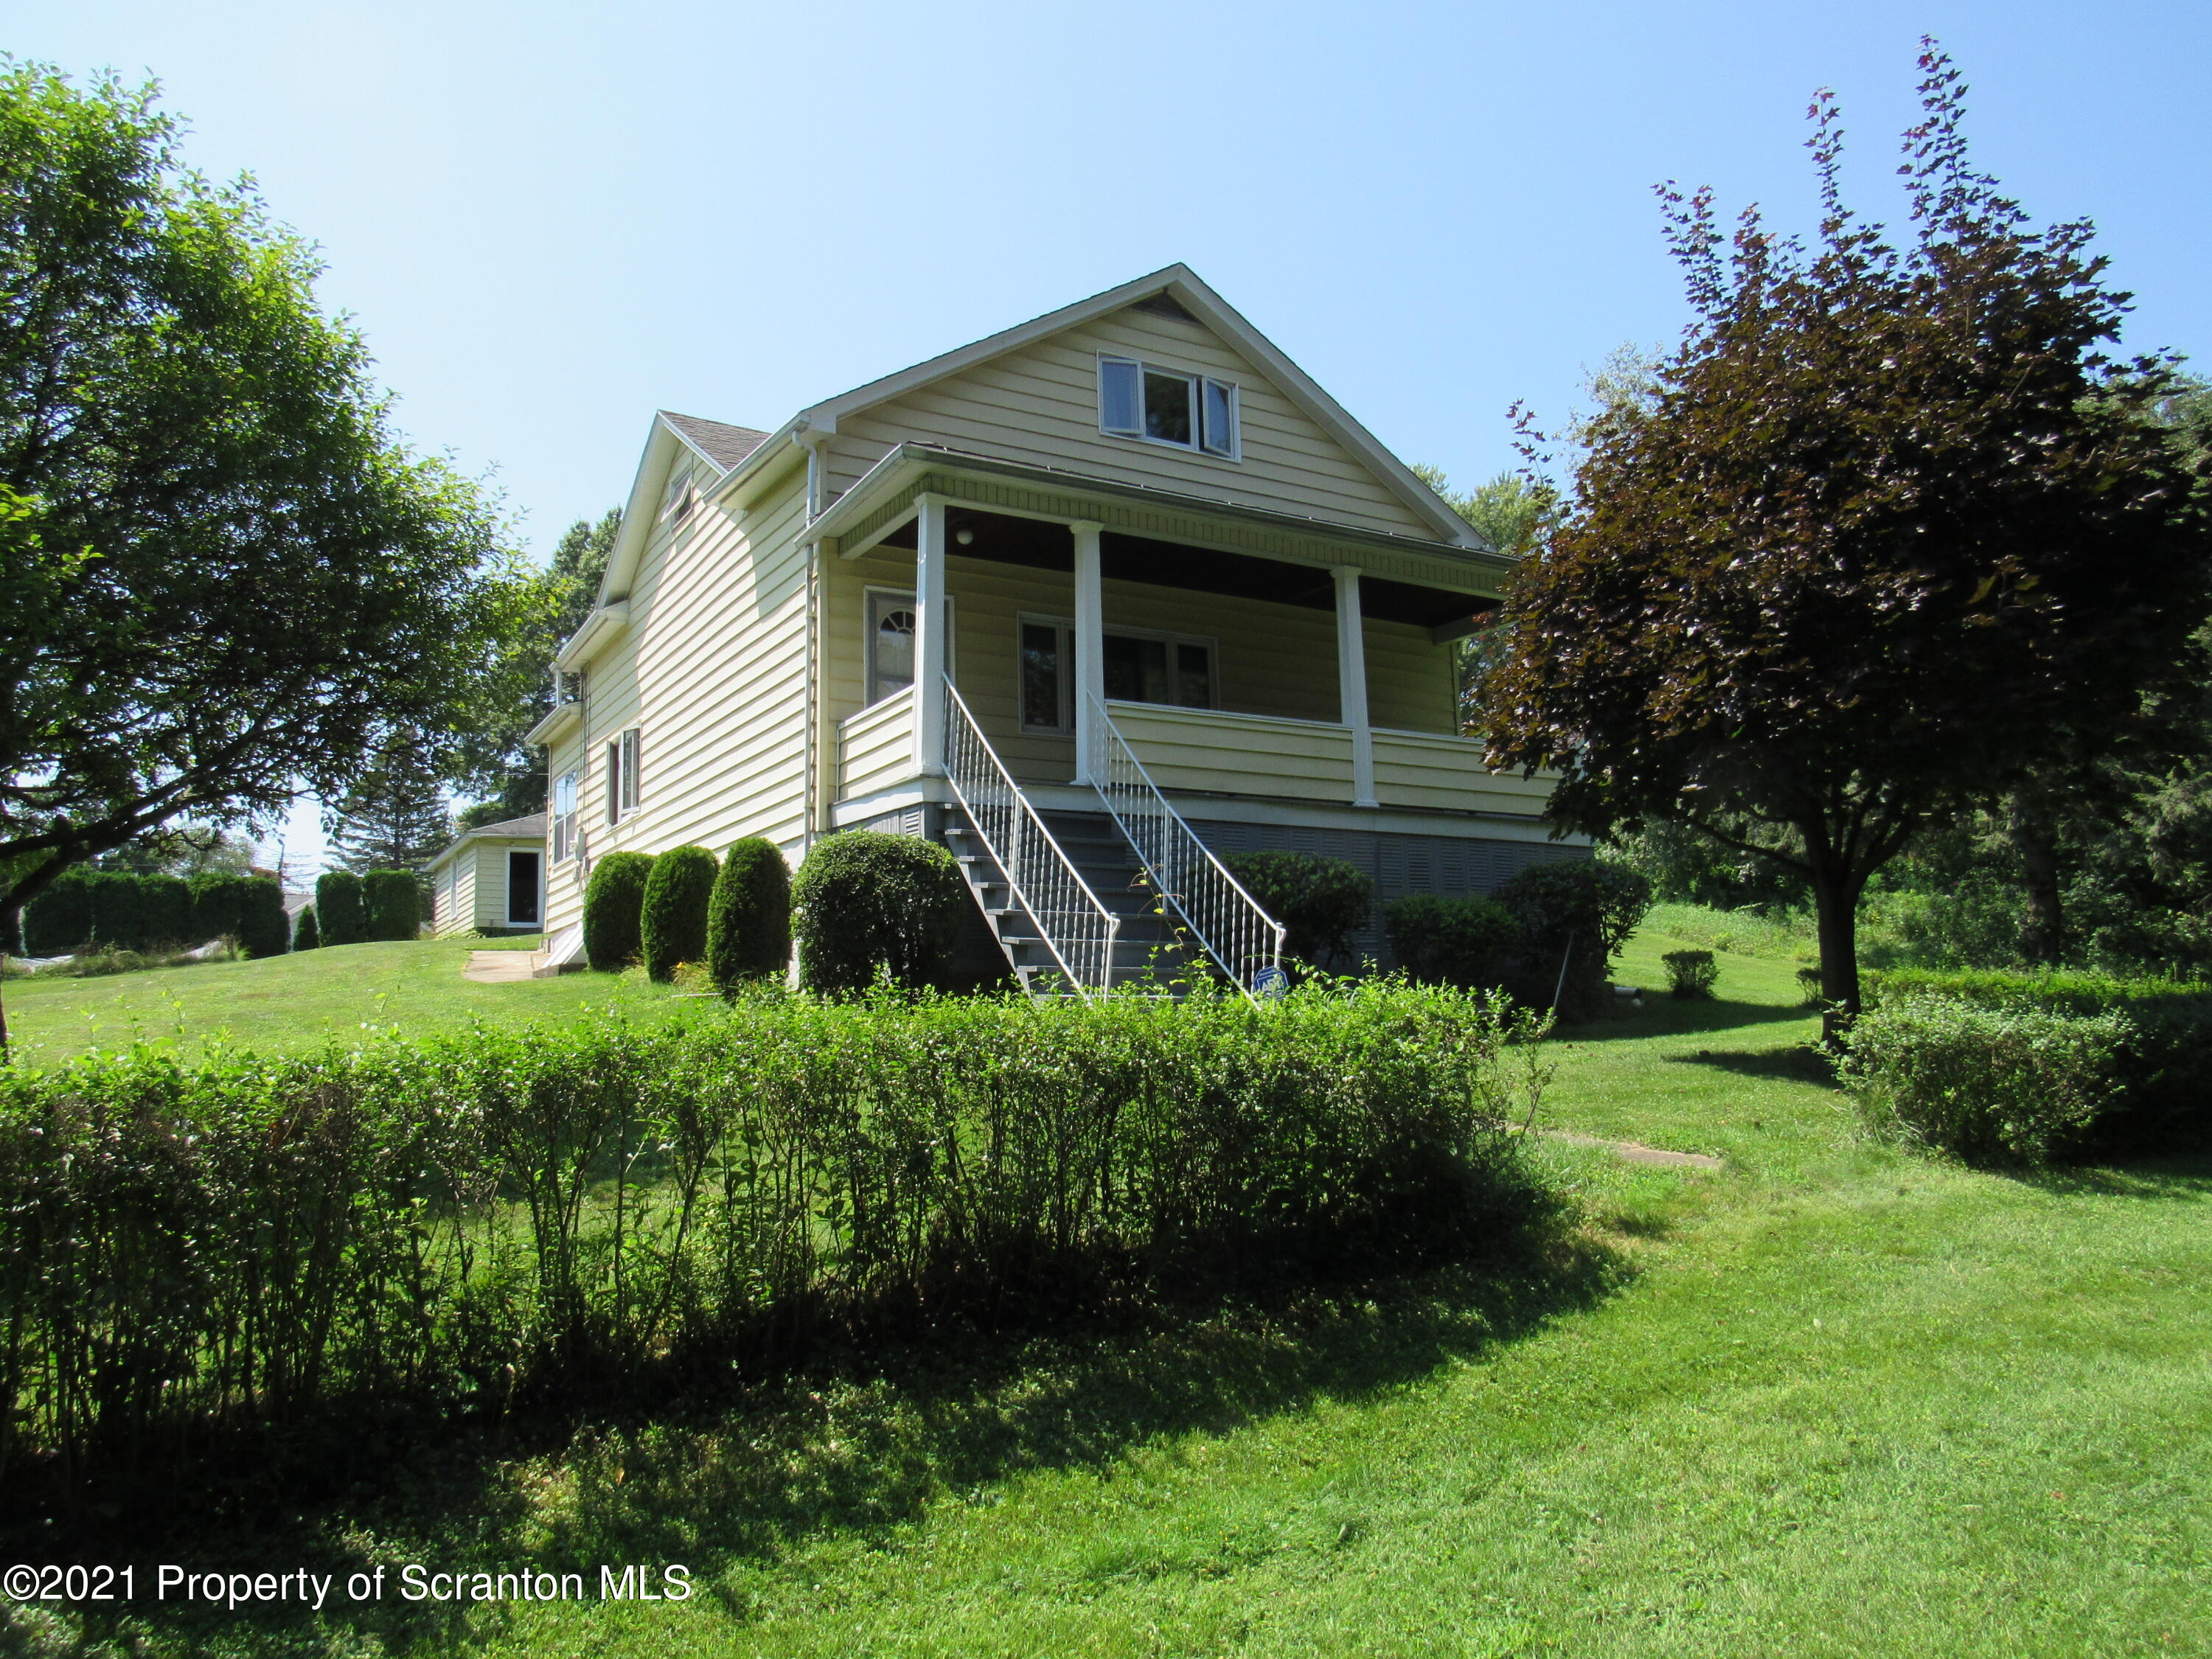 930 Fig St, Scranton, Pennsylvania 18505, 3 Bedrooms Bedrooms, 6 Rooms Rooms,1 BathroomBathrooms,Single Family,For Sale,Fig,21-4428